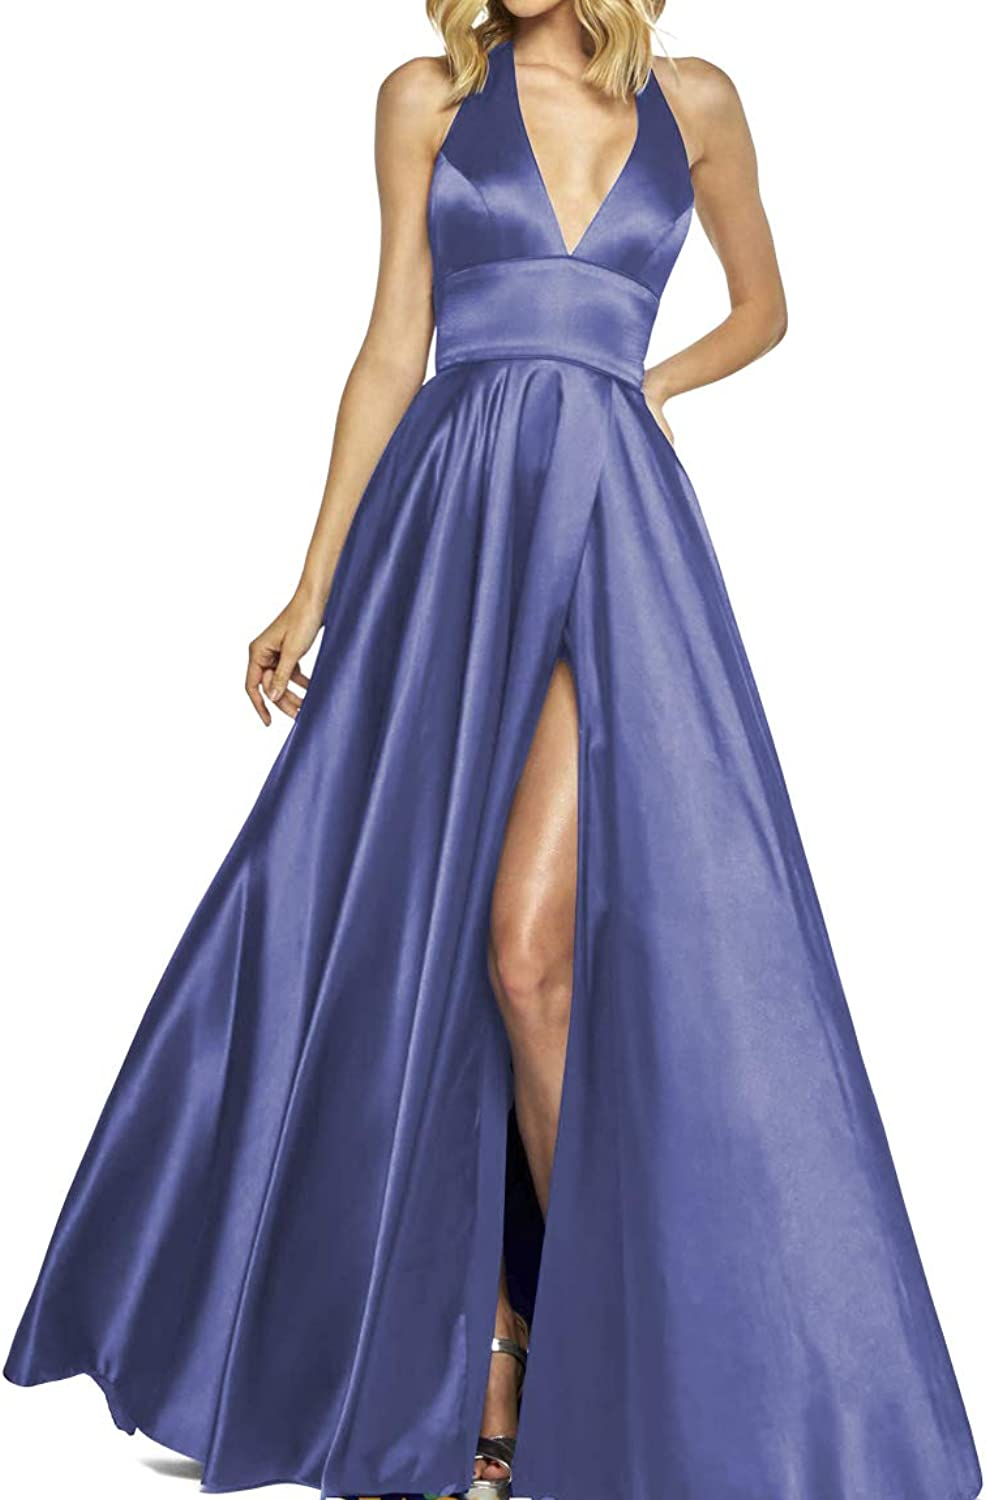 Clothfun Womens Split Prom Dresses with Pocket Halter Long Satin Open Back Formal Evening Party Gown PM16